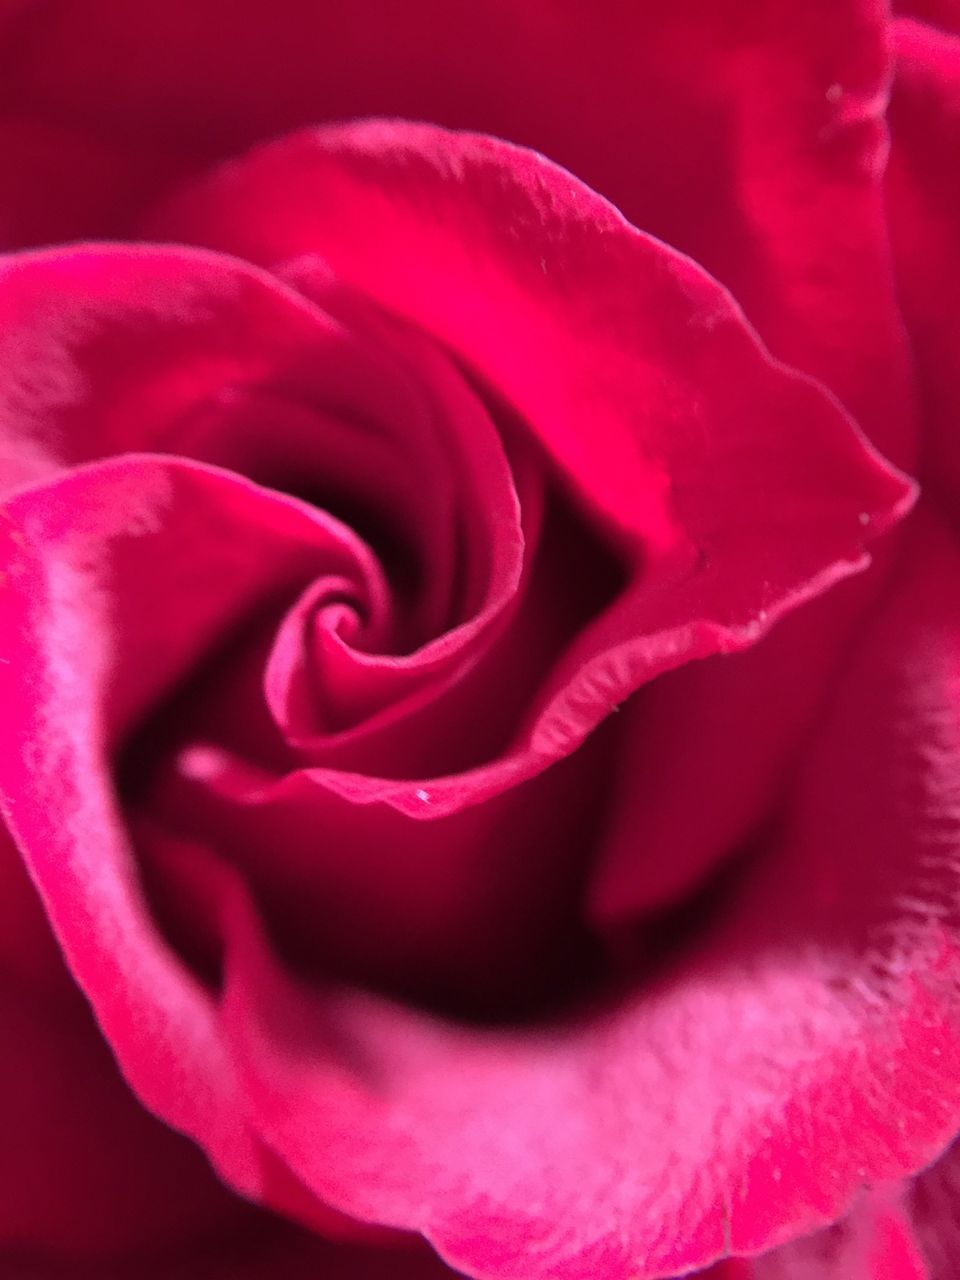 flower, petal, beauty in nature, nature, rose - flower, flower head, fragility, freshness, growth, plant, close-up, no people, softness, full frame, springtime, backgrounds, blooming, outdoors, day